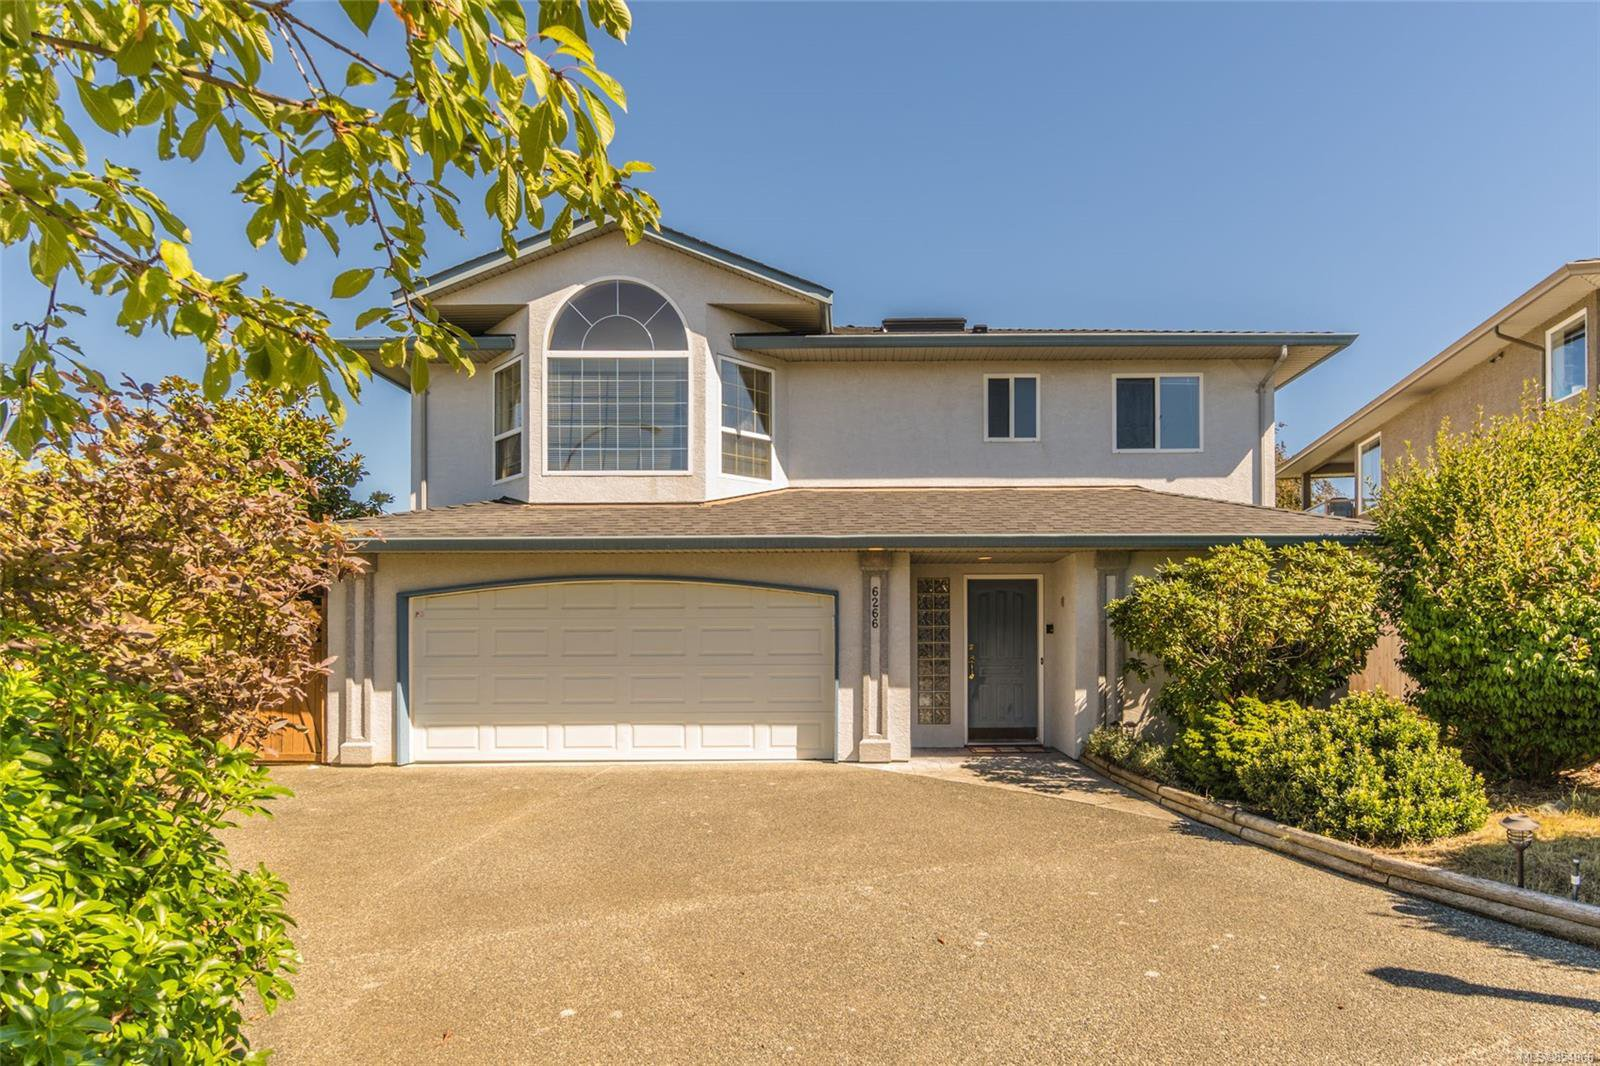 Main Photo: 6266 Caprice Pl in : Na North Nanaimo Single Family Detached for sale (Nanaimo)  : MLS®# 854966